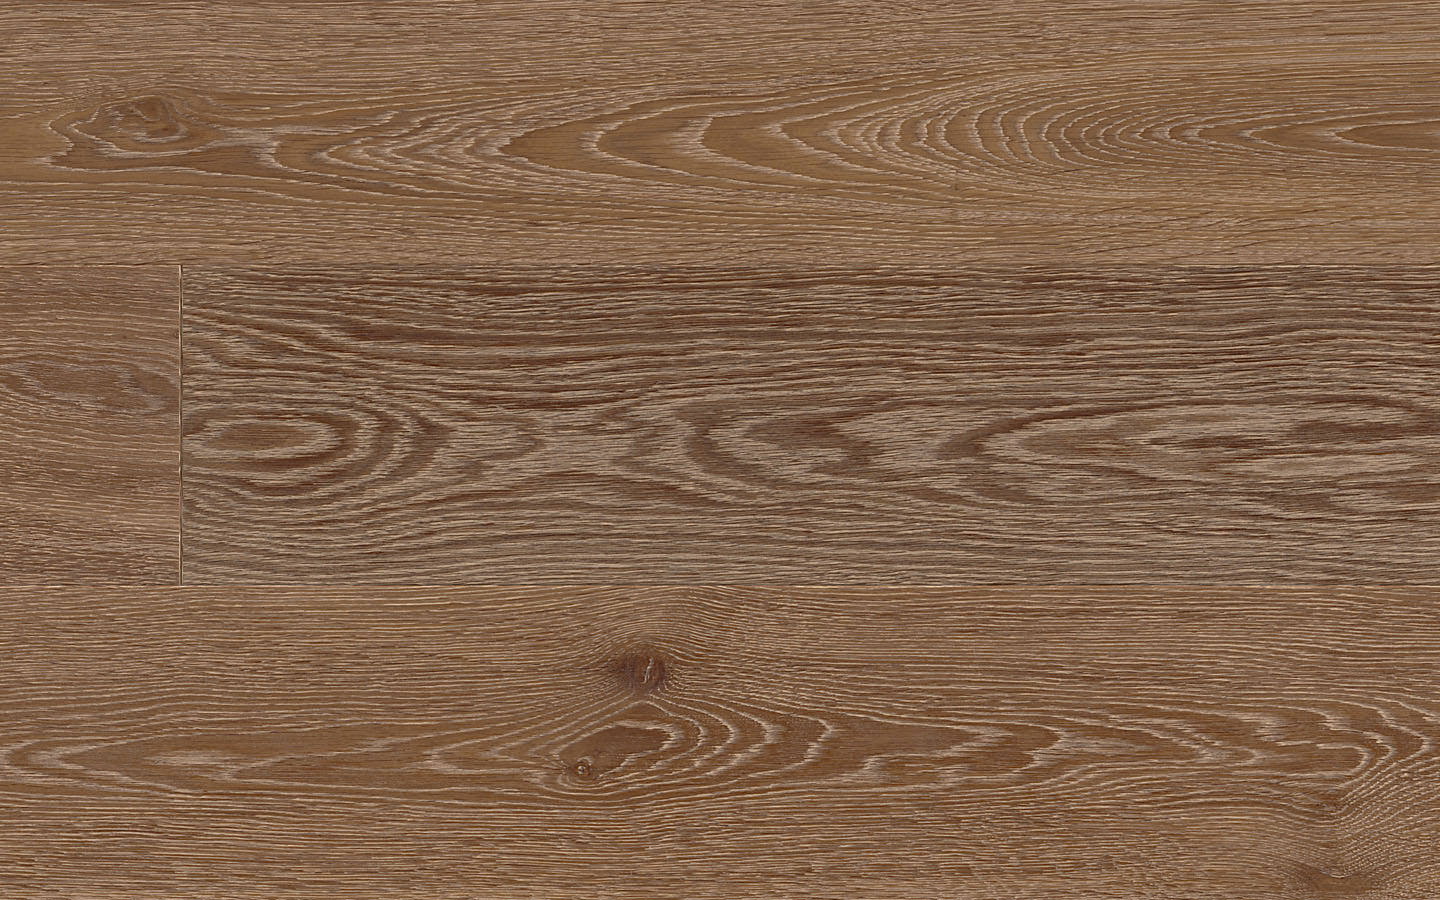 Château by adler - Oak Paris standard wire brushed color oiled - 19 x 180-350 x 1800-5000 mm